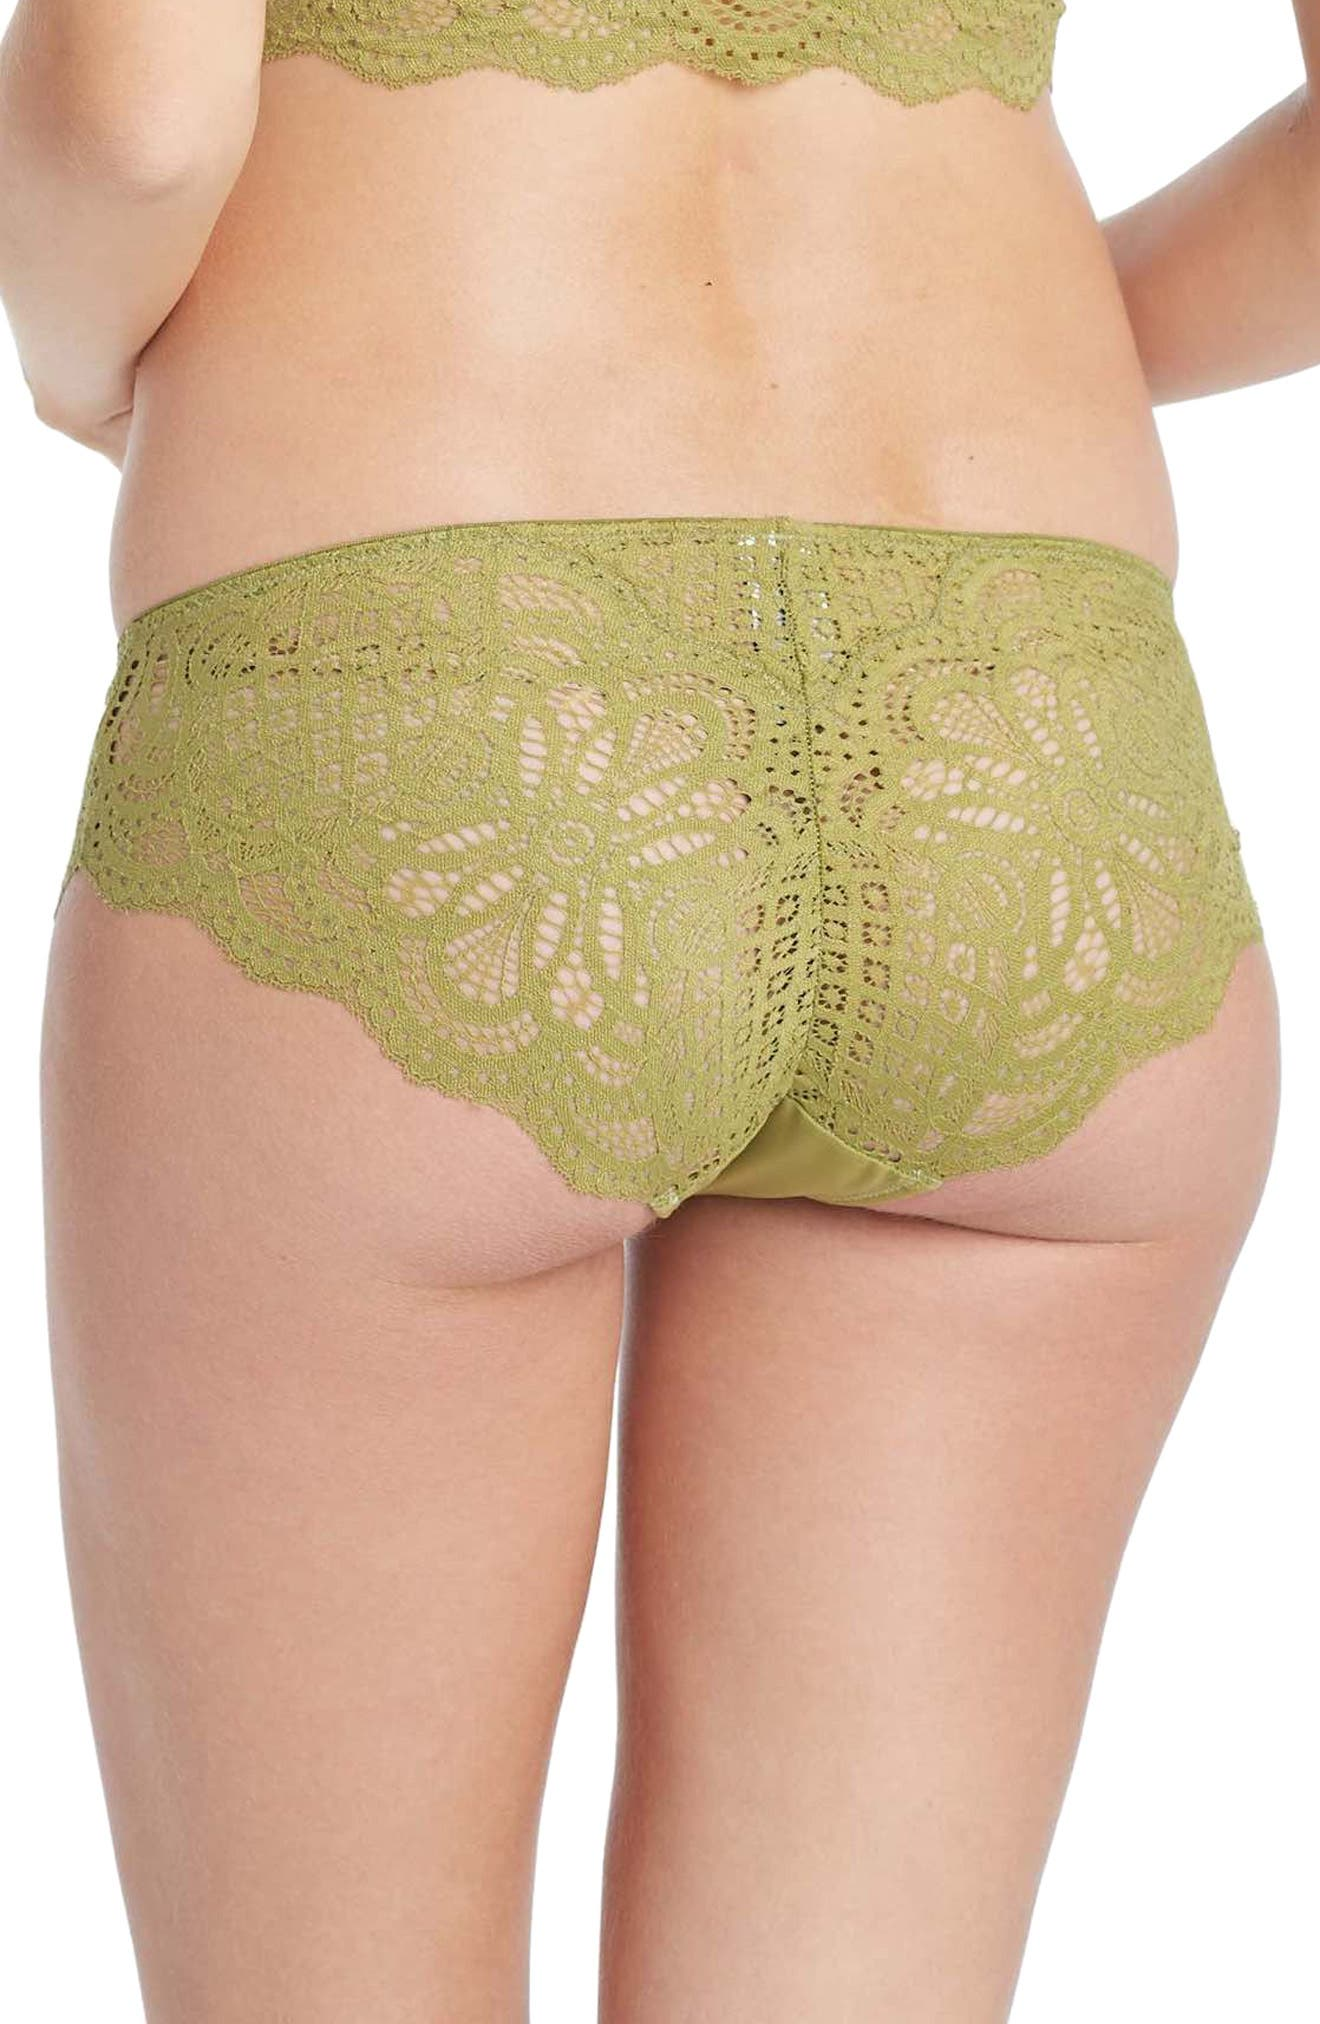 Alternate Image 2  - You! Lingerie Olivea Maternity Panties